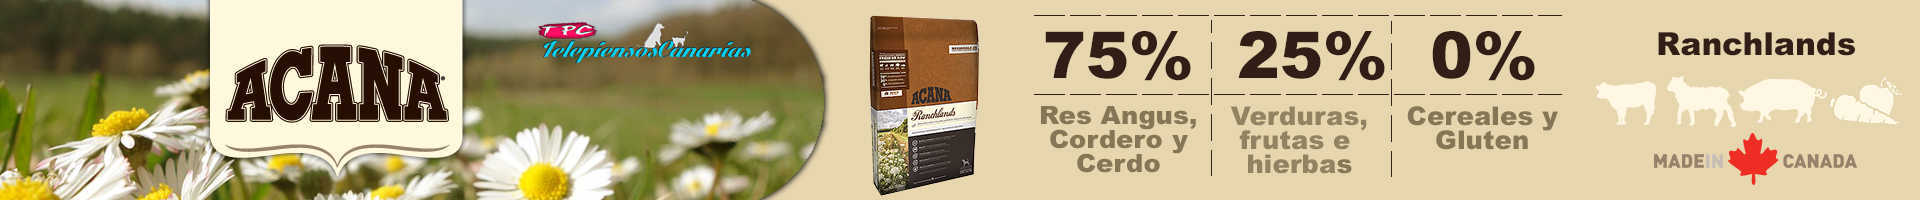 Acana ranchlands dog con 75% de carnes